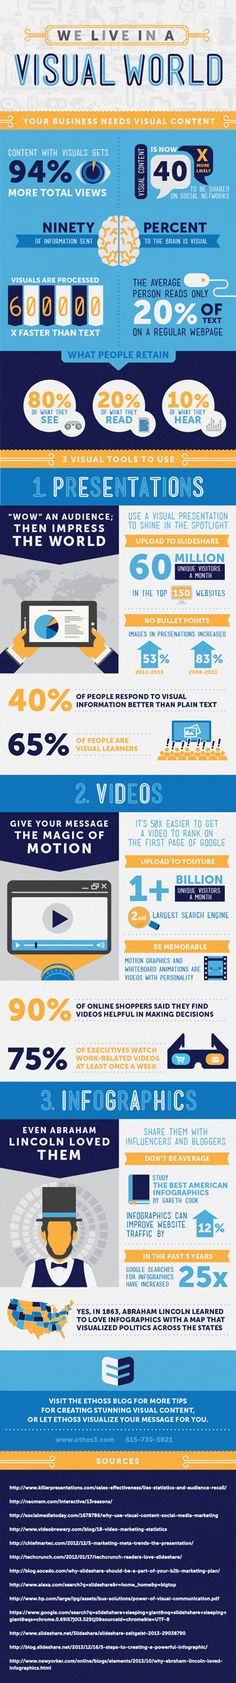 Why We're More Likely To Remember #Content With Images And Video (#Infographic)